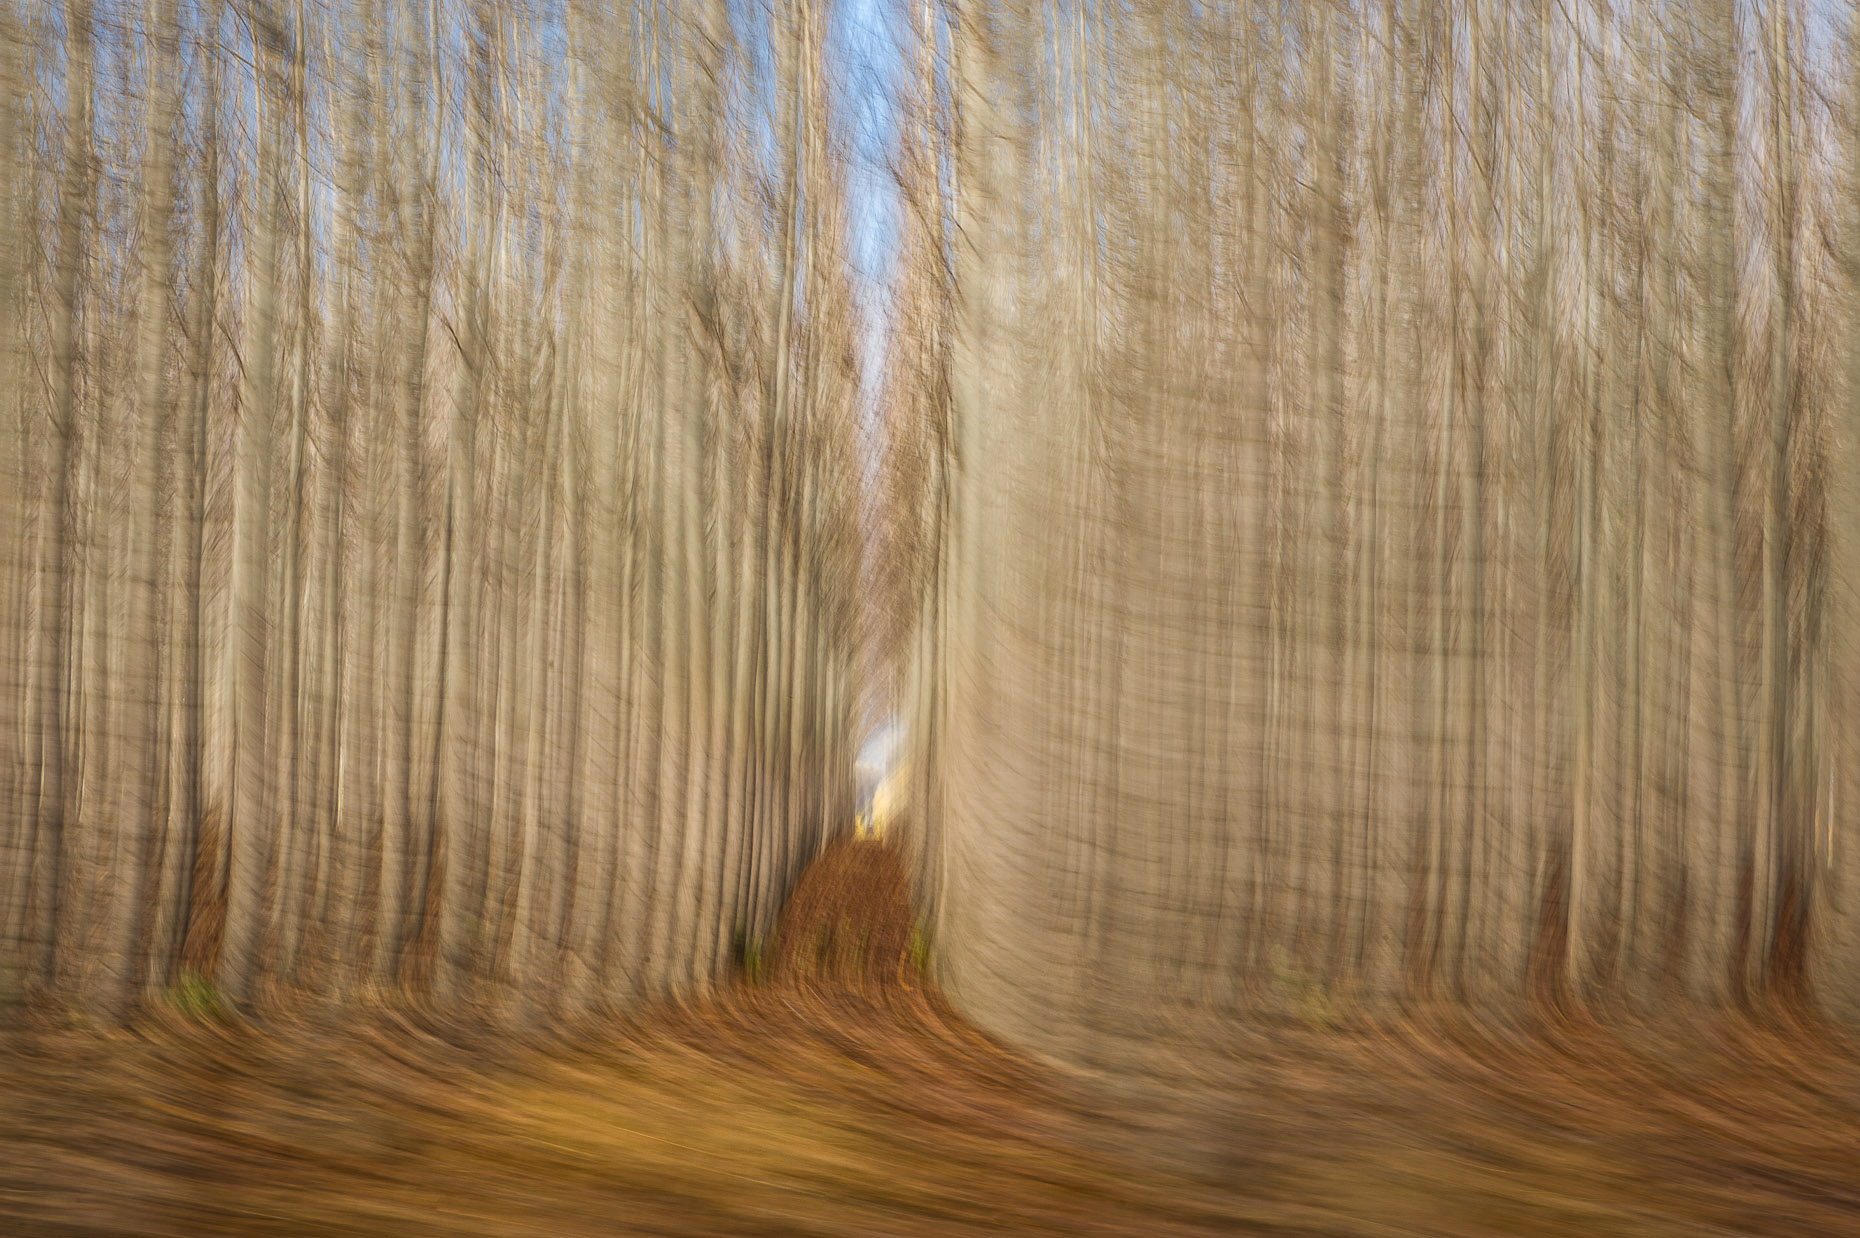 Abstract photo of repetitive poplar trees in late fall.